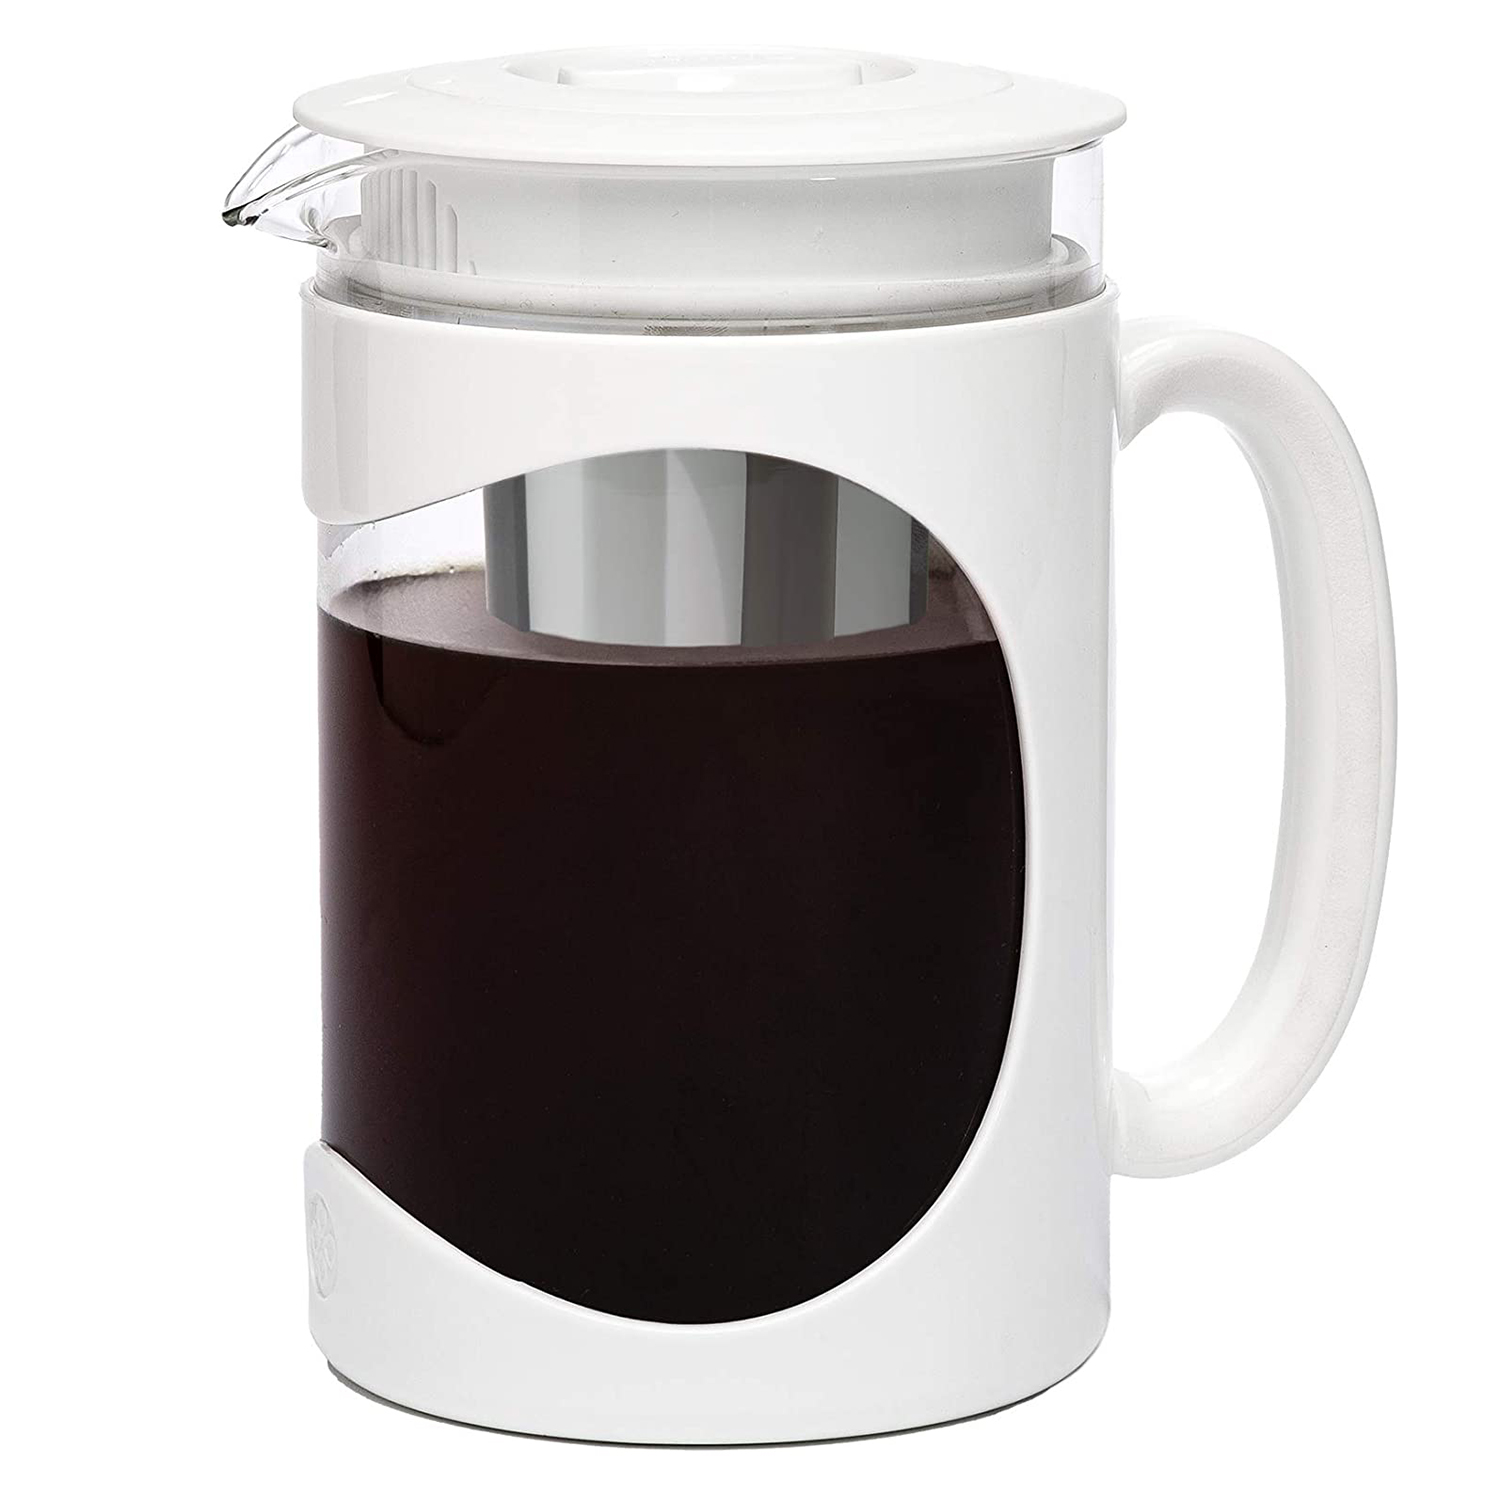 Primula Burke Deluxe Cold Brew Iced Coffee Maker, Comfort Grip Handle